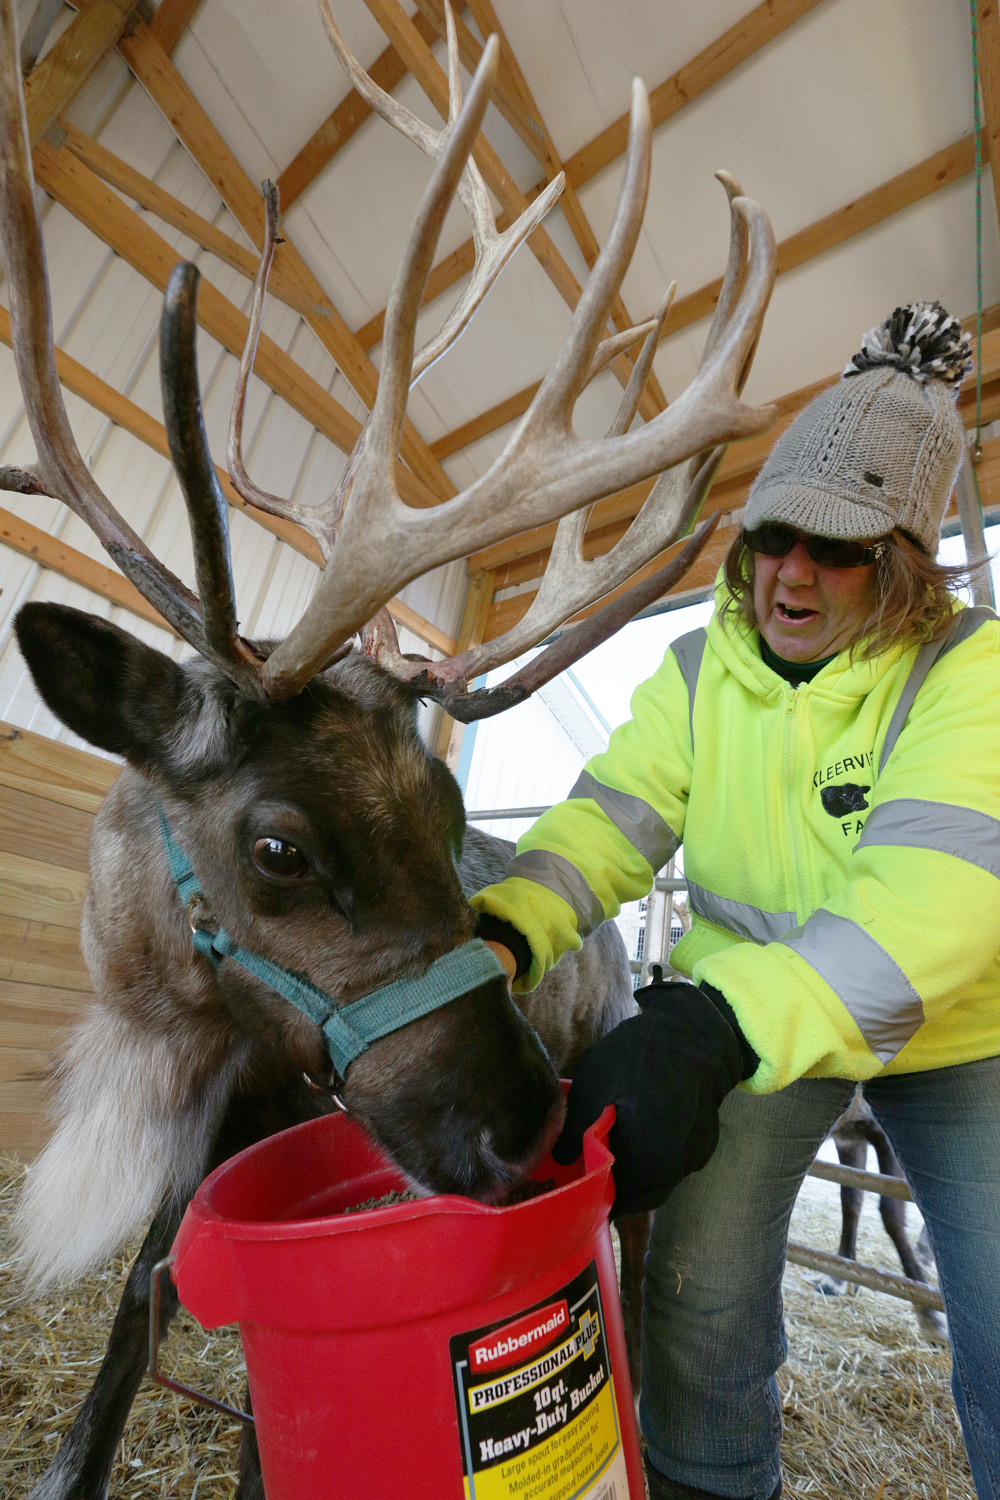 Feature on a far in Richland County where you can buy your own trees for Christmas, and also rent reindeer!